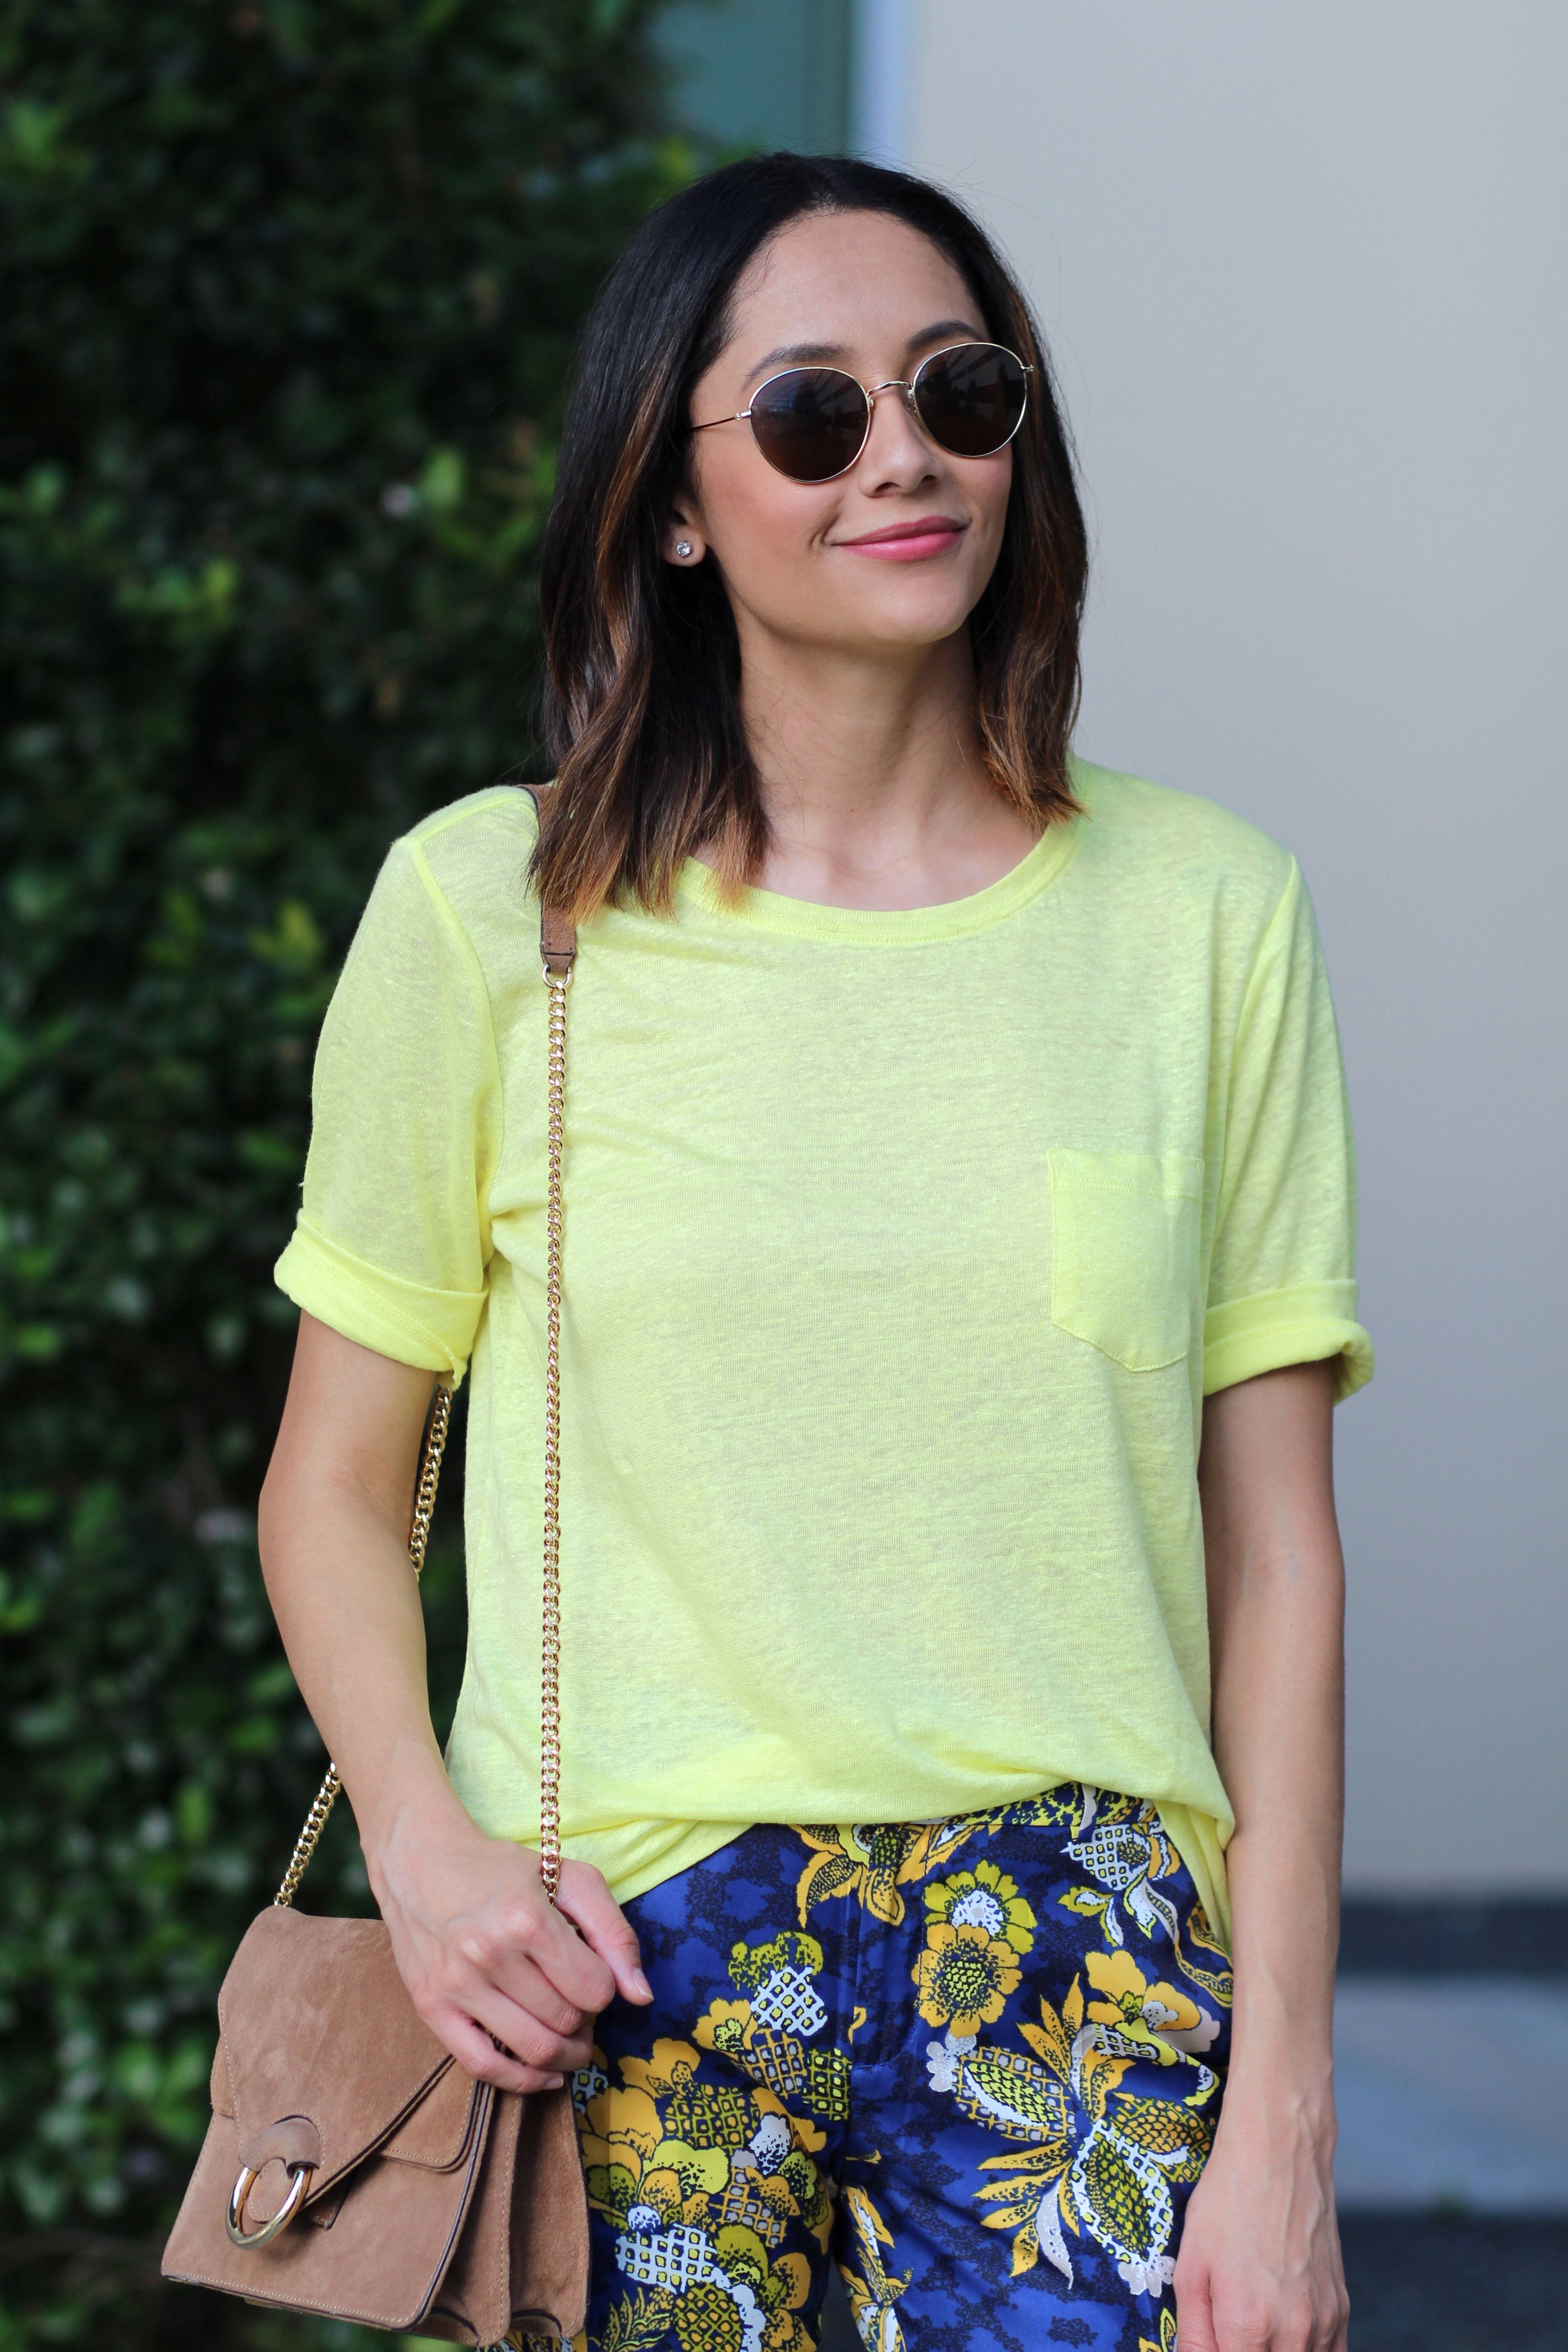 Fashion blogger Lilly Beltran of Daily Craving stylsh look wearing a yellow tee and floral print Banana Republic pants